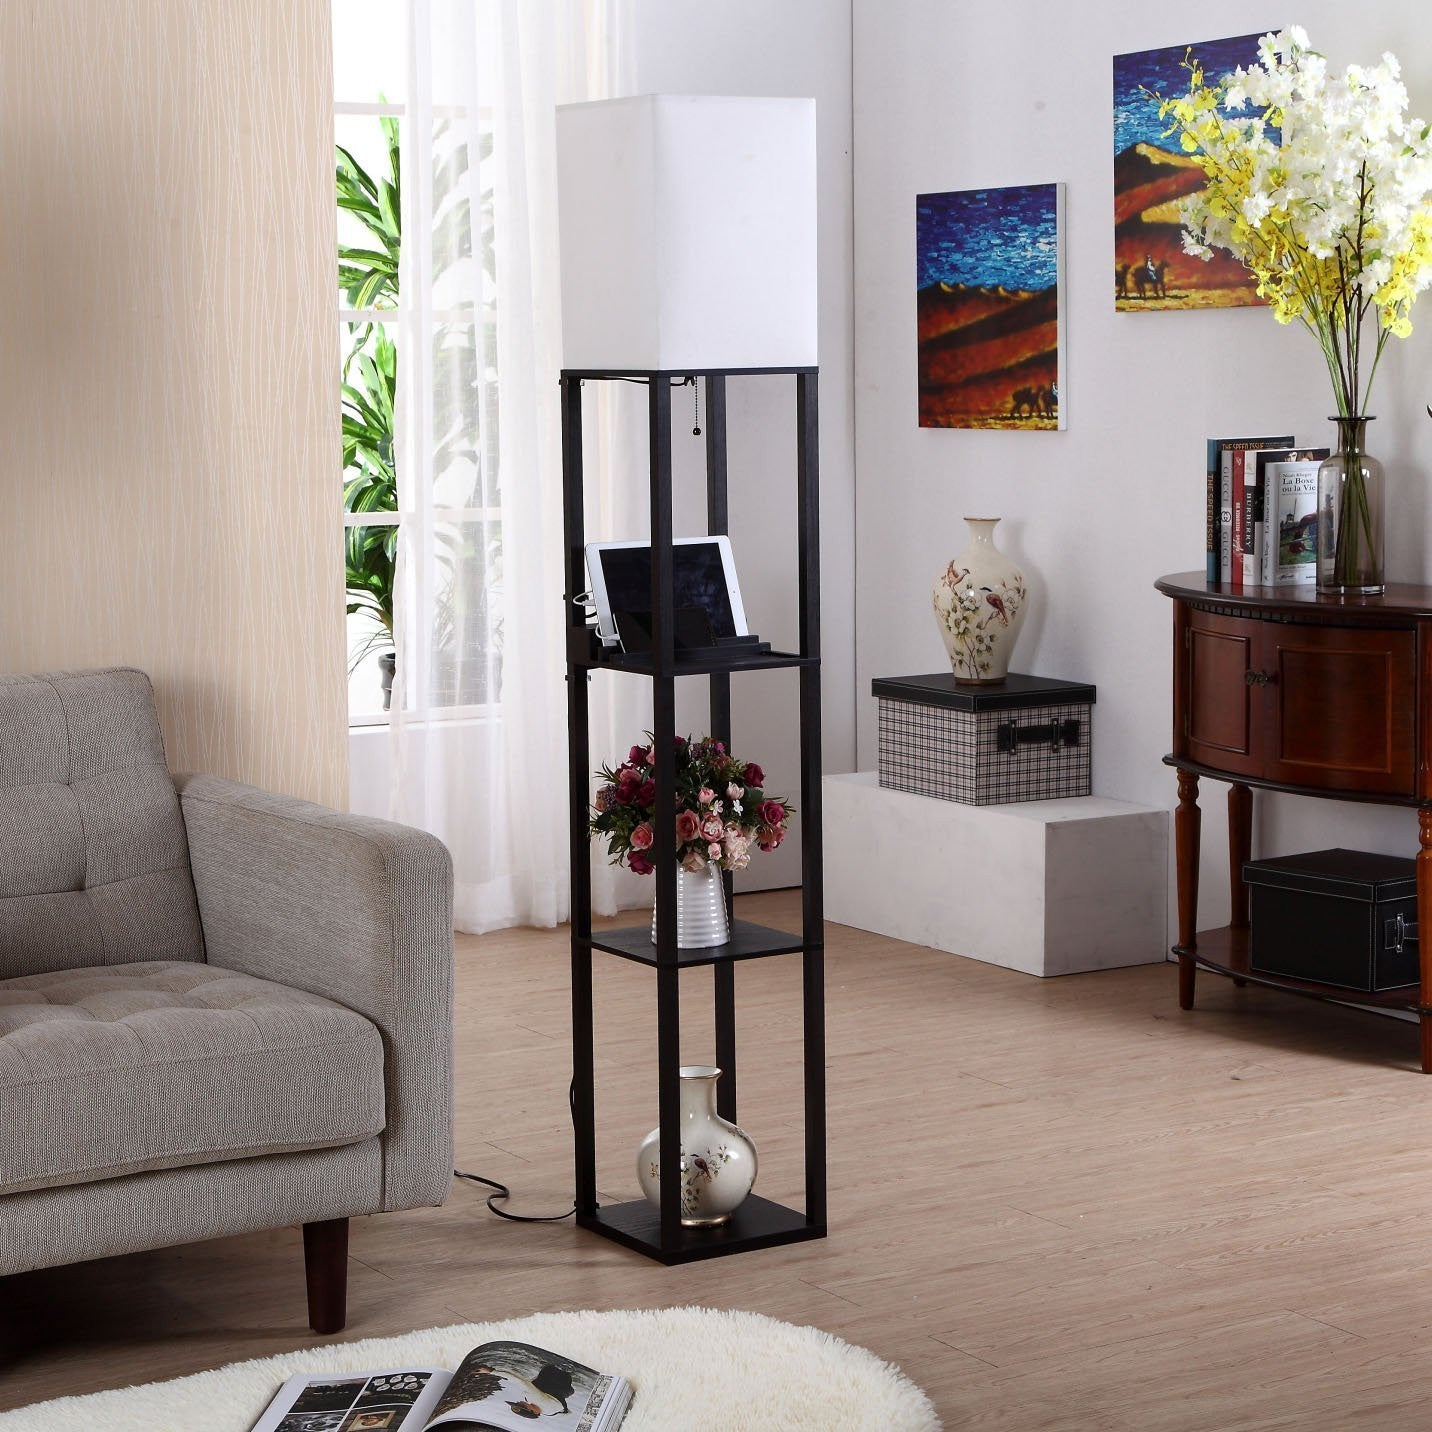 Brightech Store | Brightech U2013 Maxwell USB Shelf Floor Lamp U2013 Mood Lighting  For Your Living Room And Bedroom U2013 Shade Diffused Light Source In A Natural  Wood ...